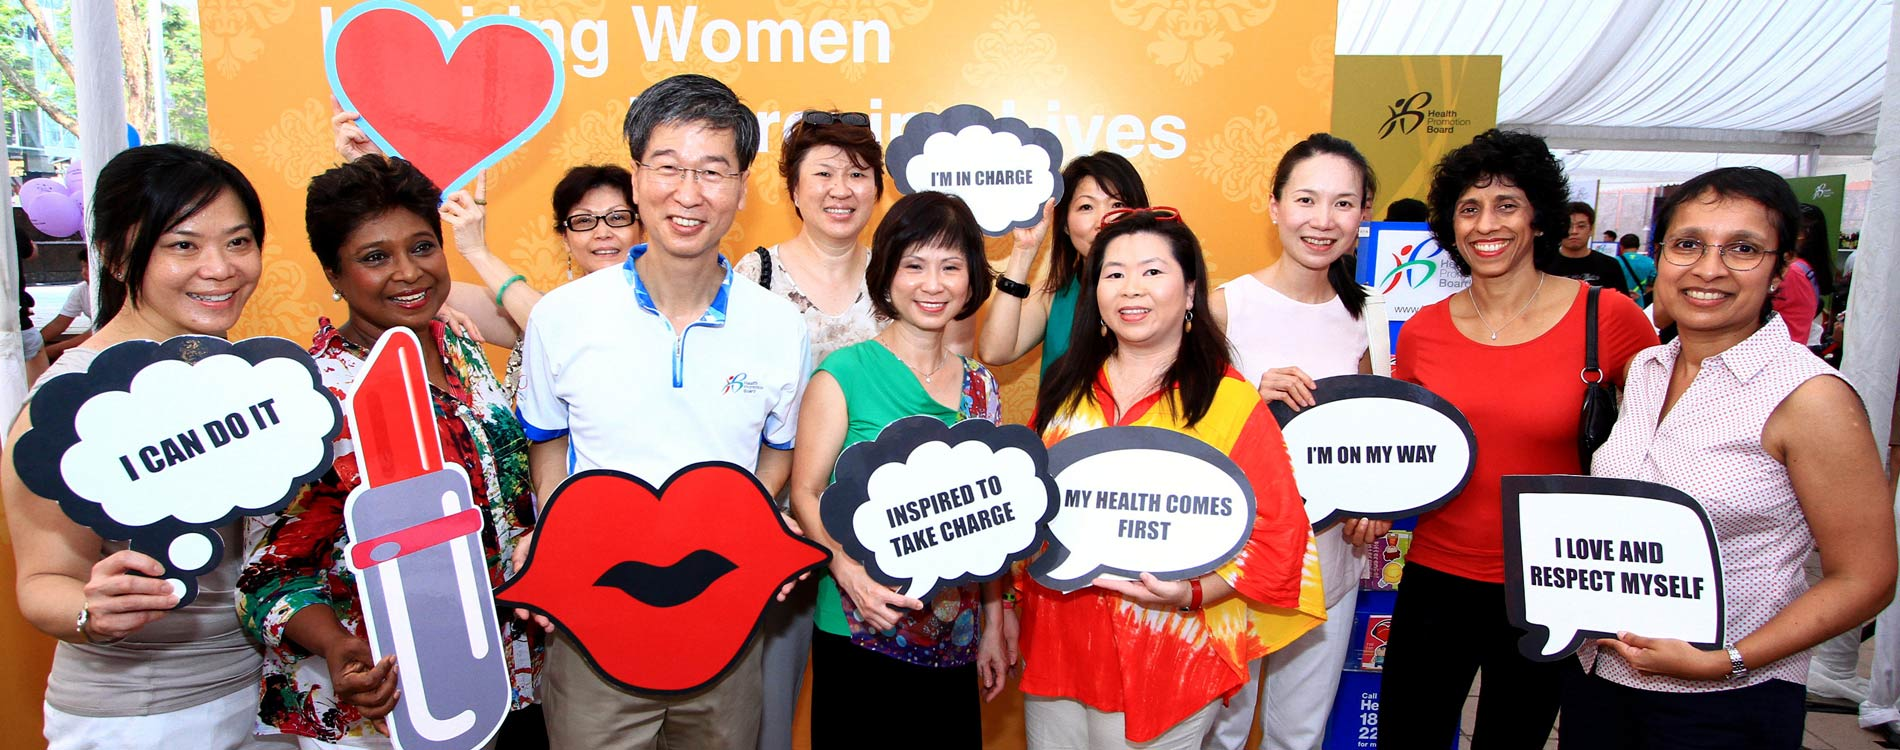 Singapore Events Management Company and Government National Campaigns Singapore